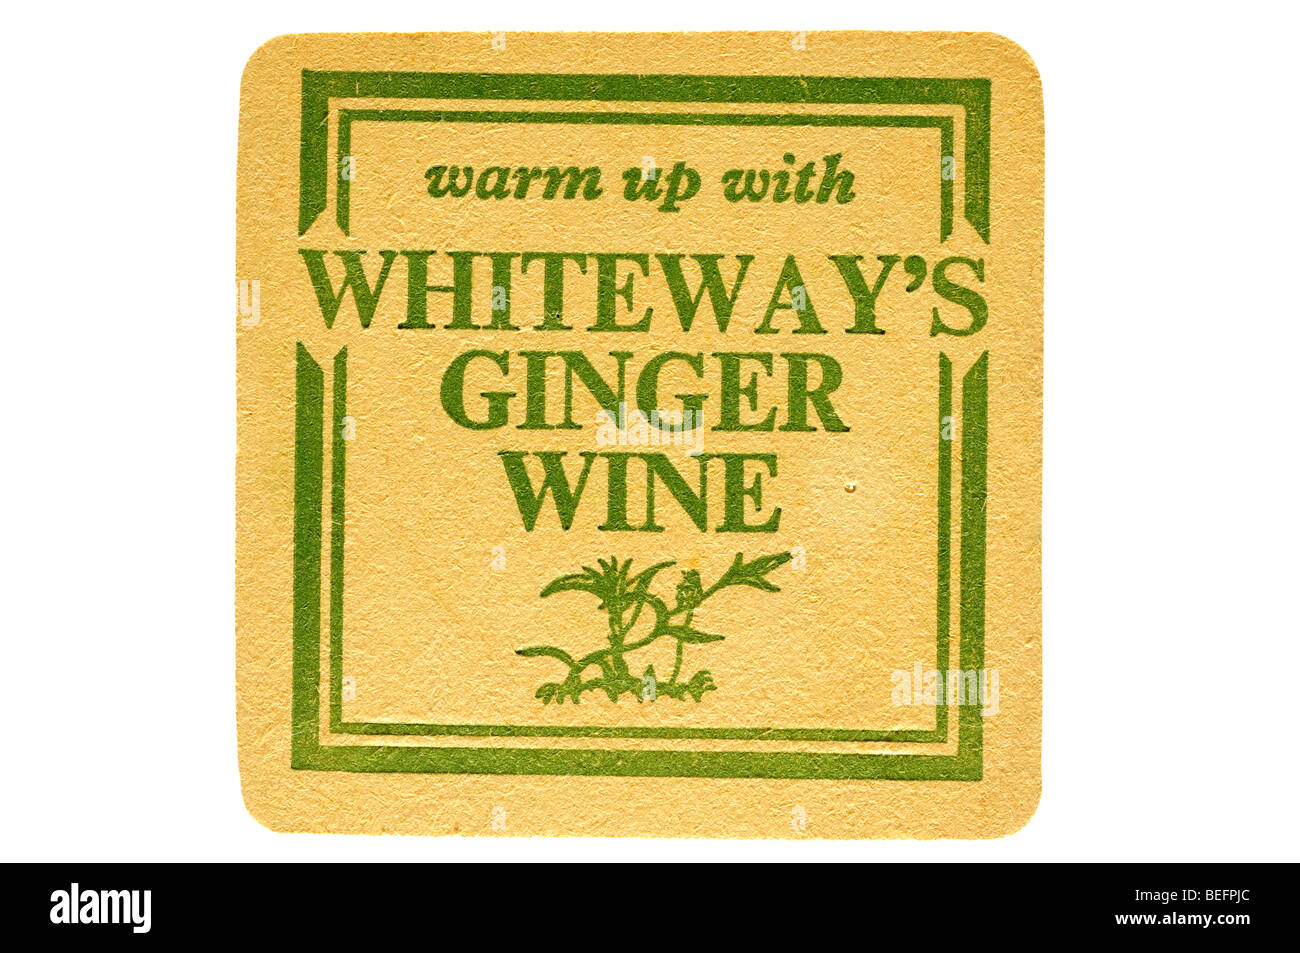 warm up with whiteways ginger wine - Stock Image